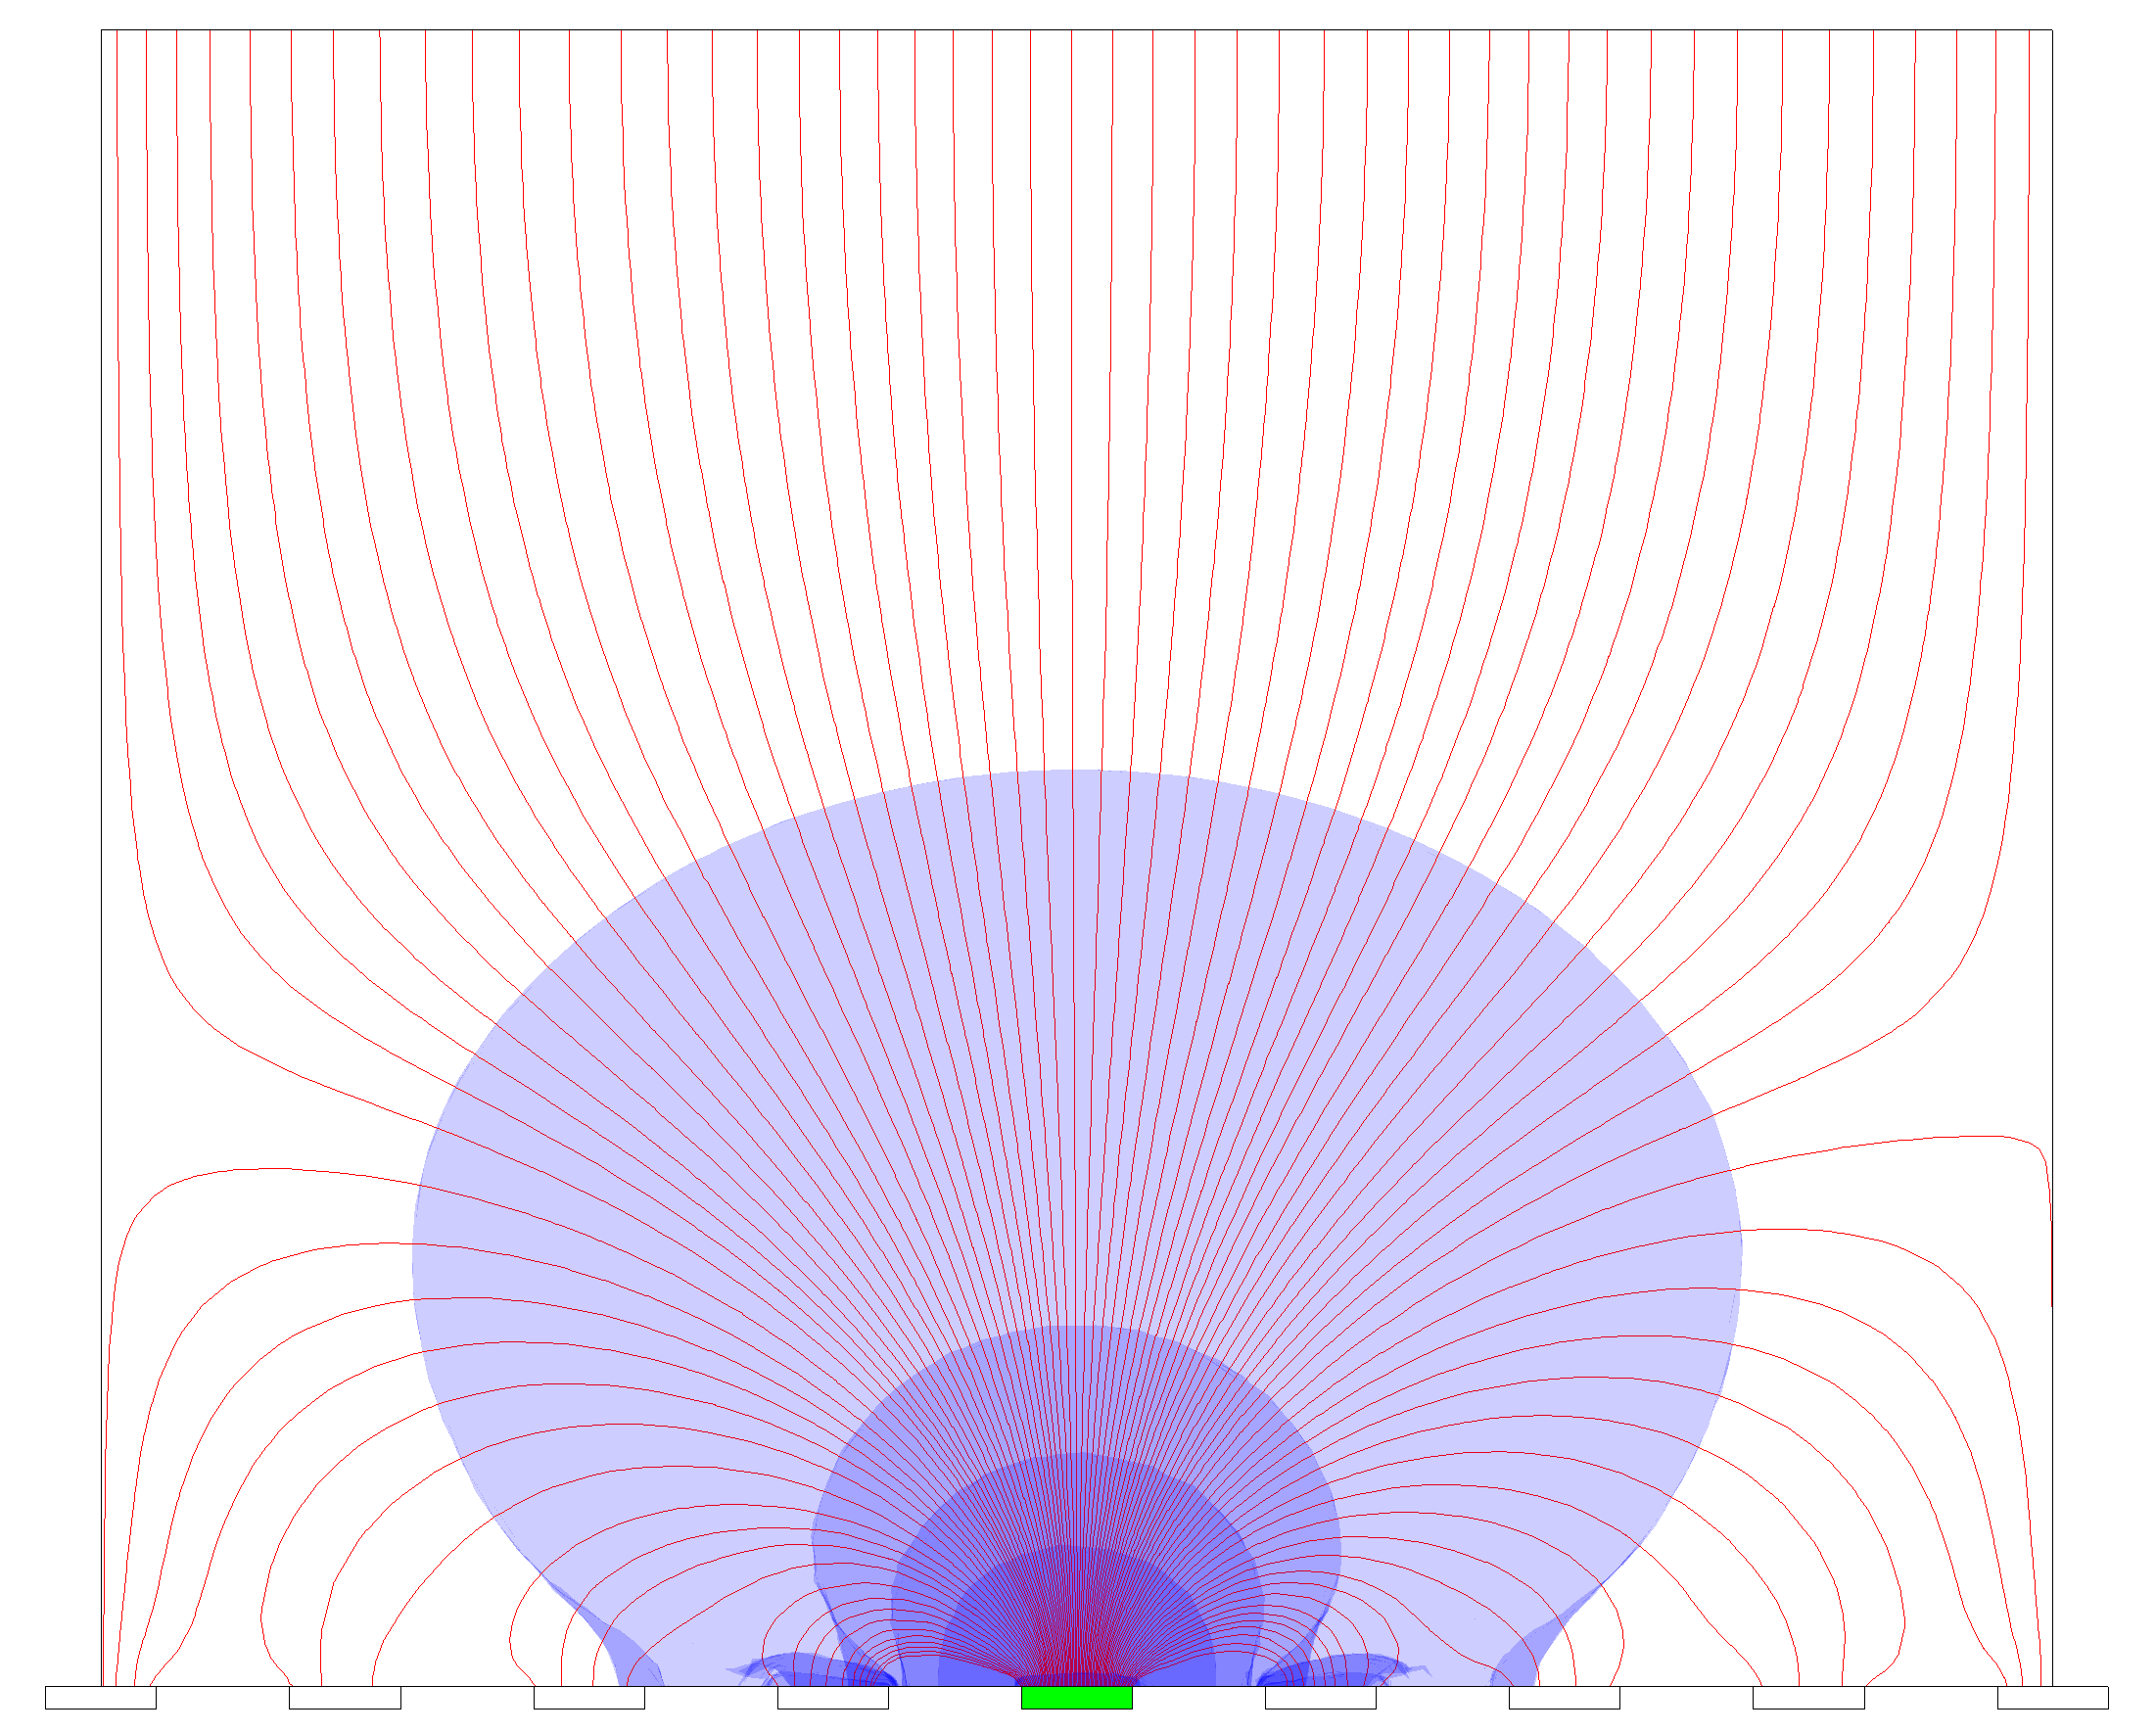 3.1 Electric Fields Figure 3.3 Weighting field lines (red) and weighting potential (blue shaded area) of the central electrode (green) for the standard setup calculated in 3D.